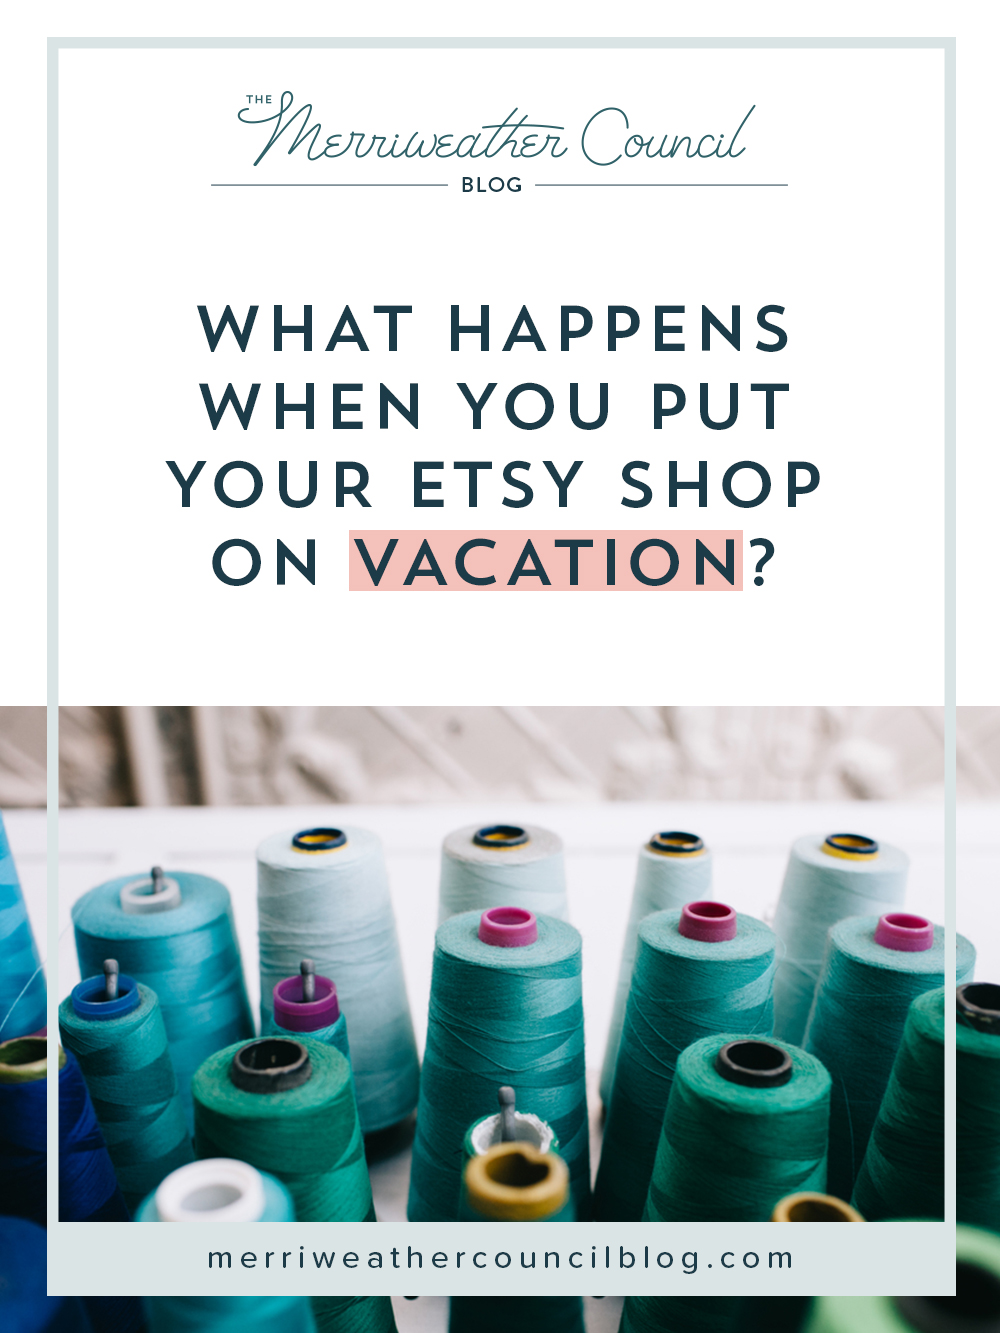 What Happens When you put Your Etsy Shop on Vacation? | the merriweather council blog